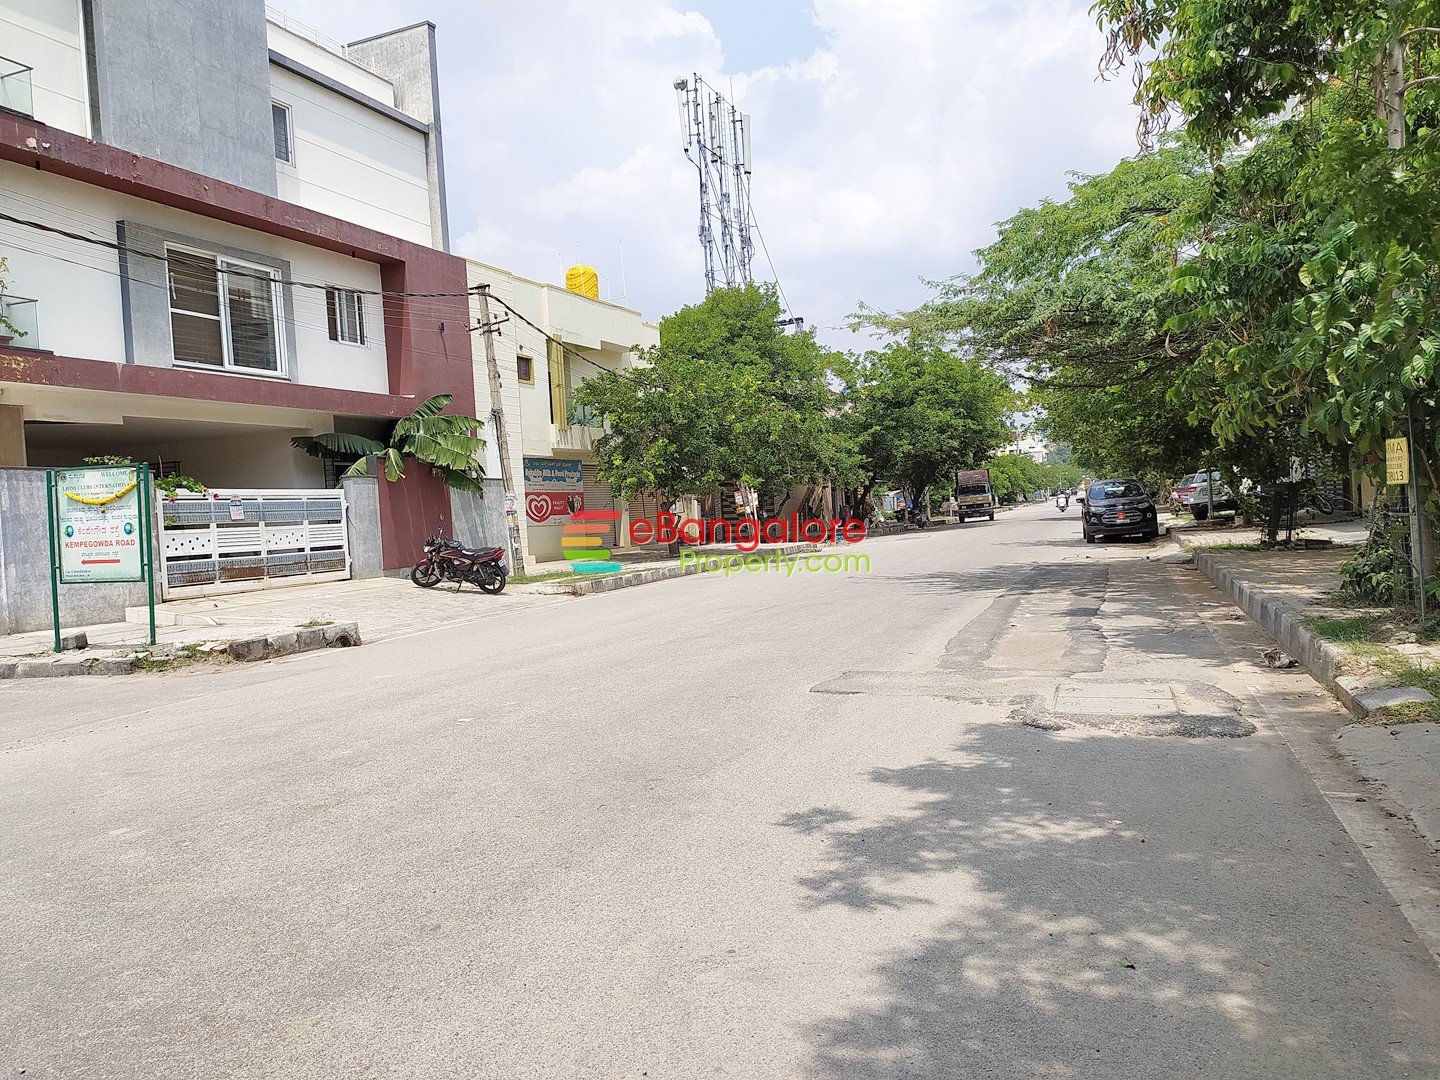 HBR Layout Ext – 50×80 Commercial BDA North Facing Site For Sale – 1.7KM from Manyata